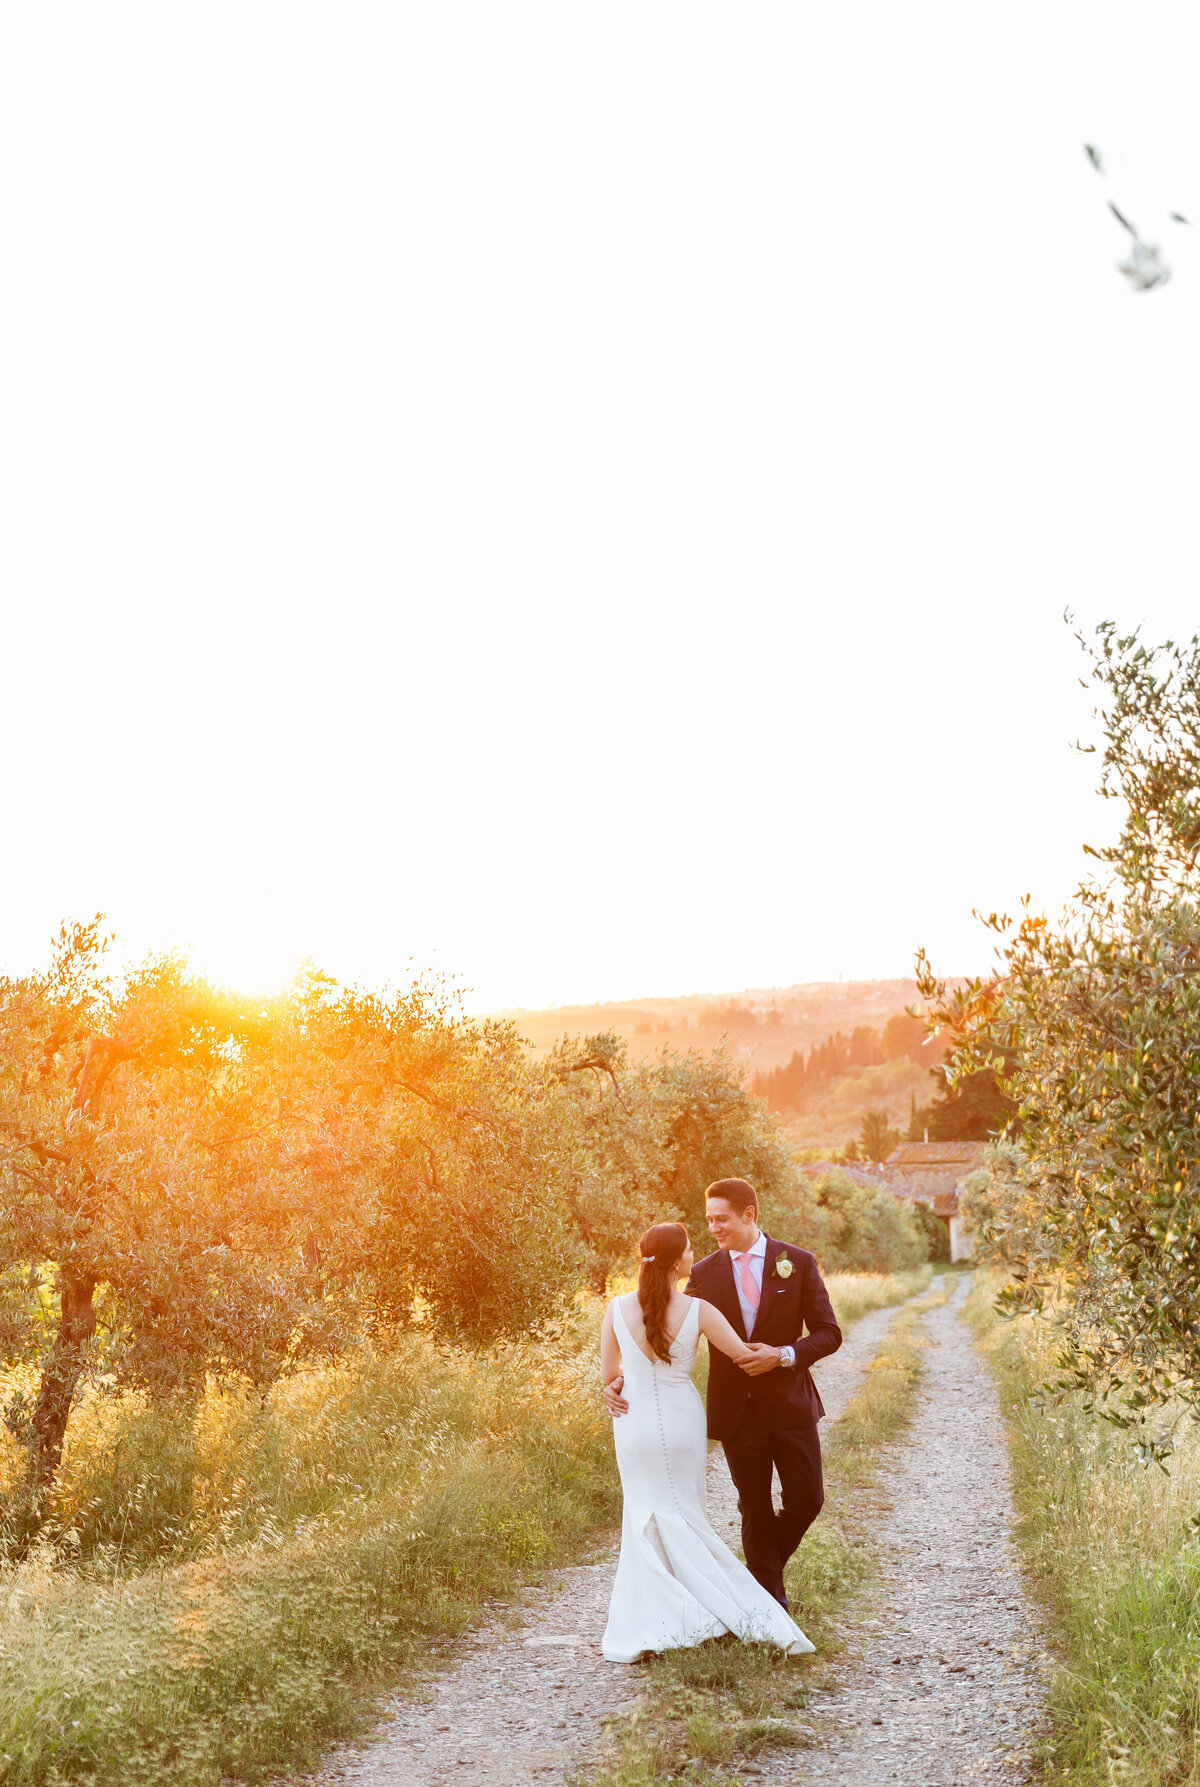 Tuscany_Italy_0276_Helga_Marc_Wedding_2941